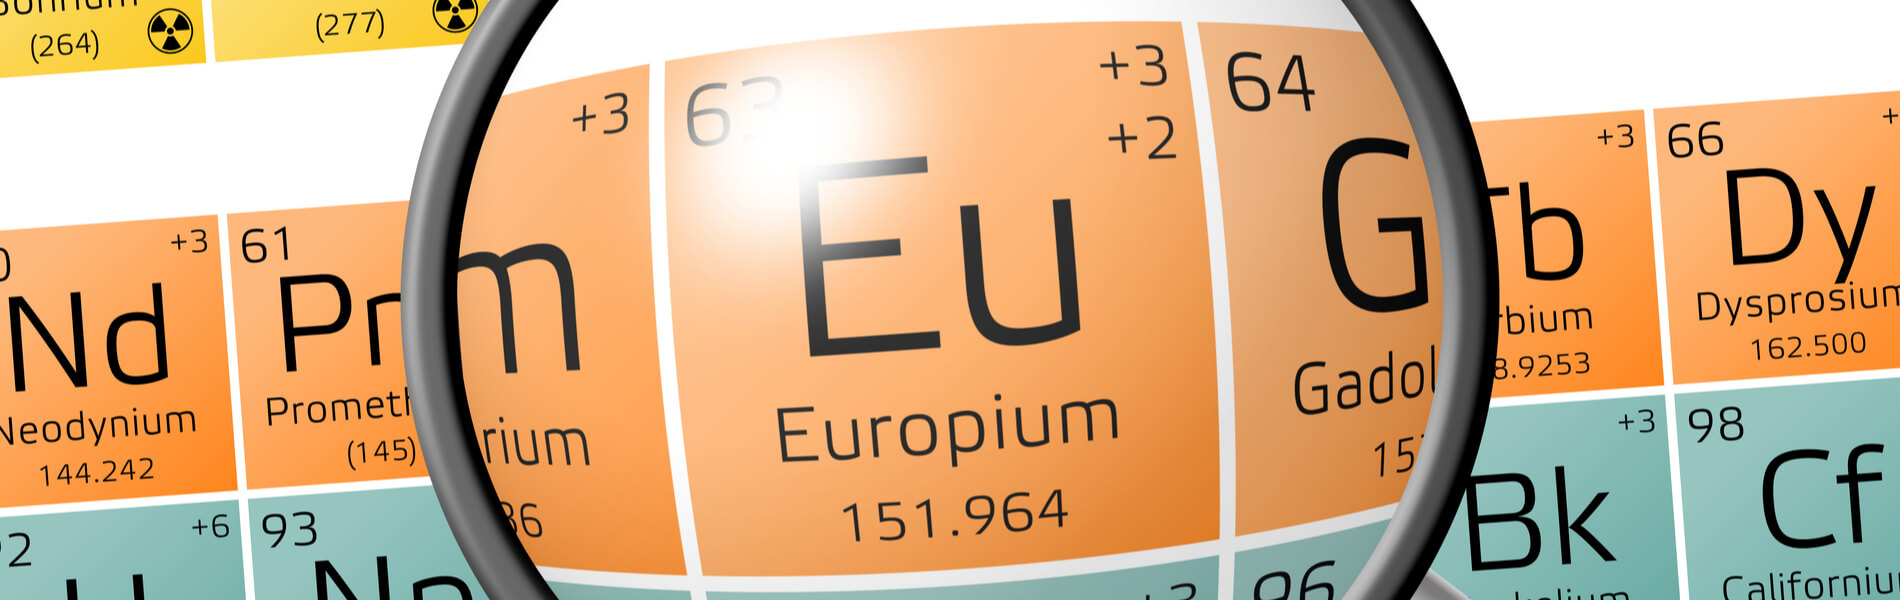 rare-earth-elements-electronics-manufacturing-banner